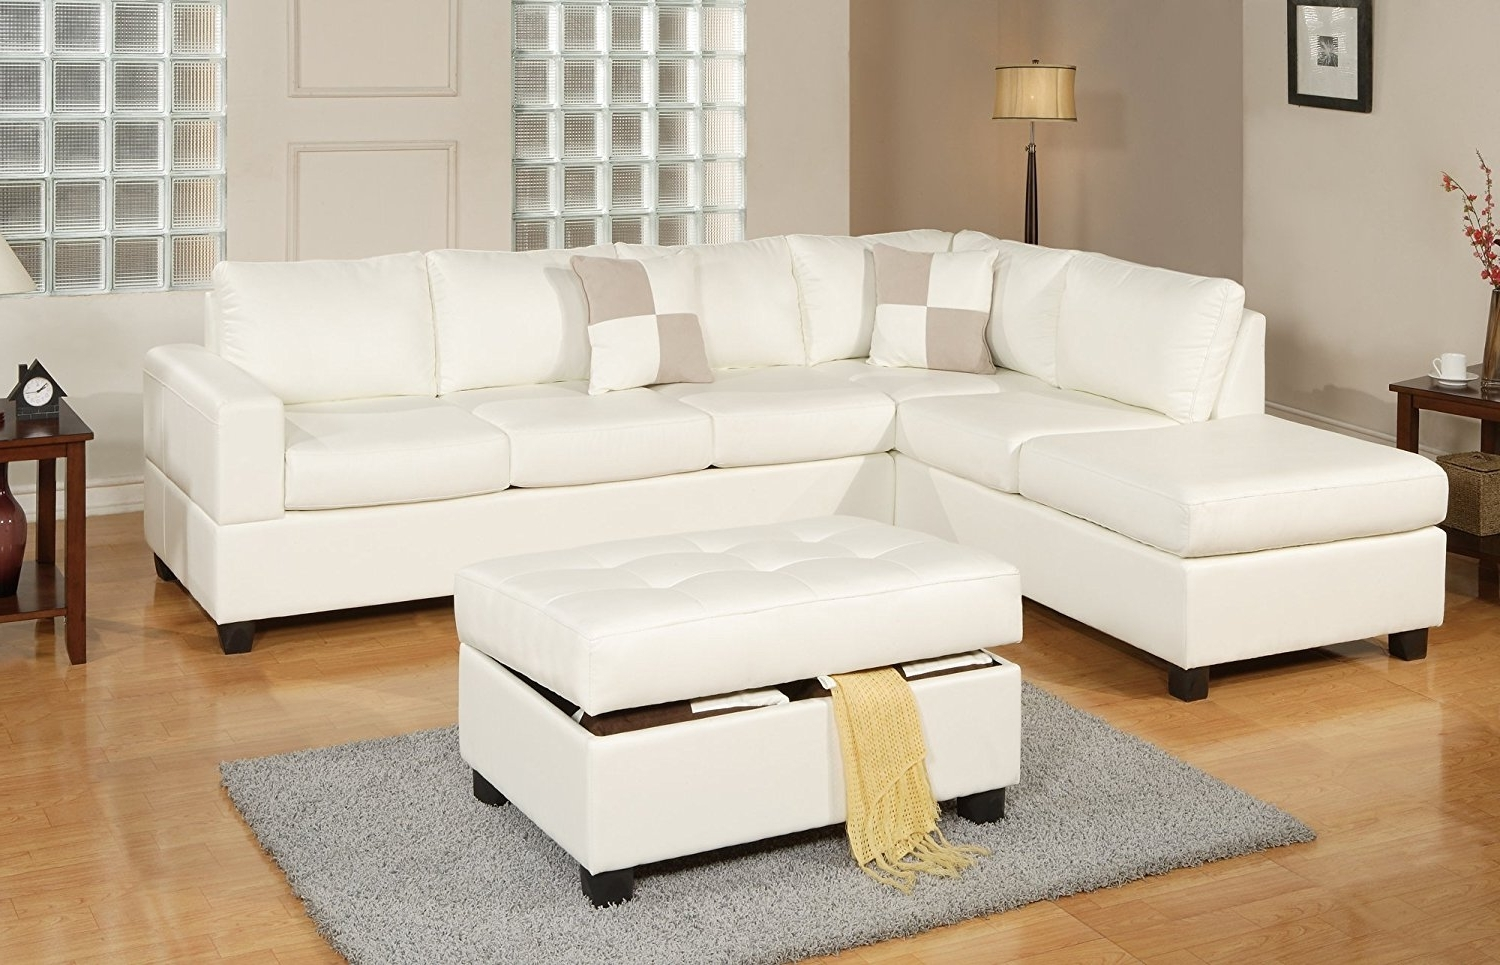 Leather Sectional Sofas With Ottoman Inside Widely Used Amazon: Bobkona Soft Touch Reversible Bonded Leather Match  (View 6 of 15)